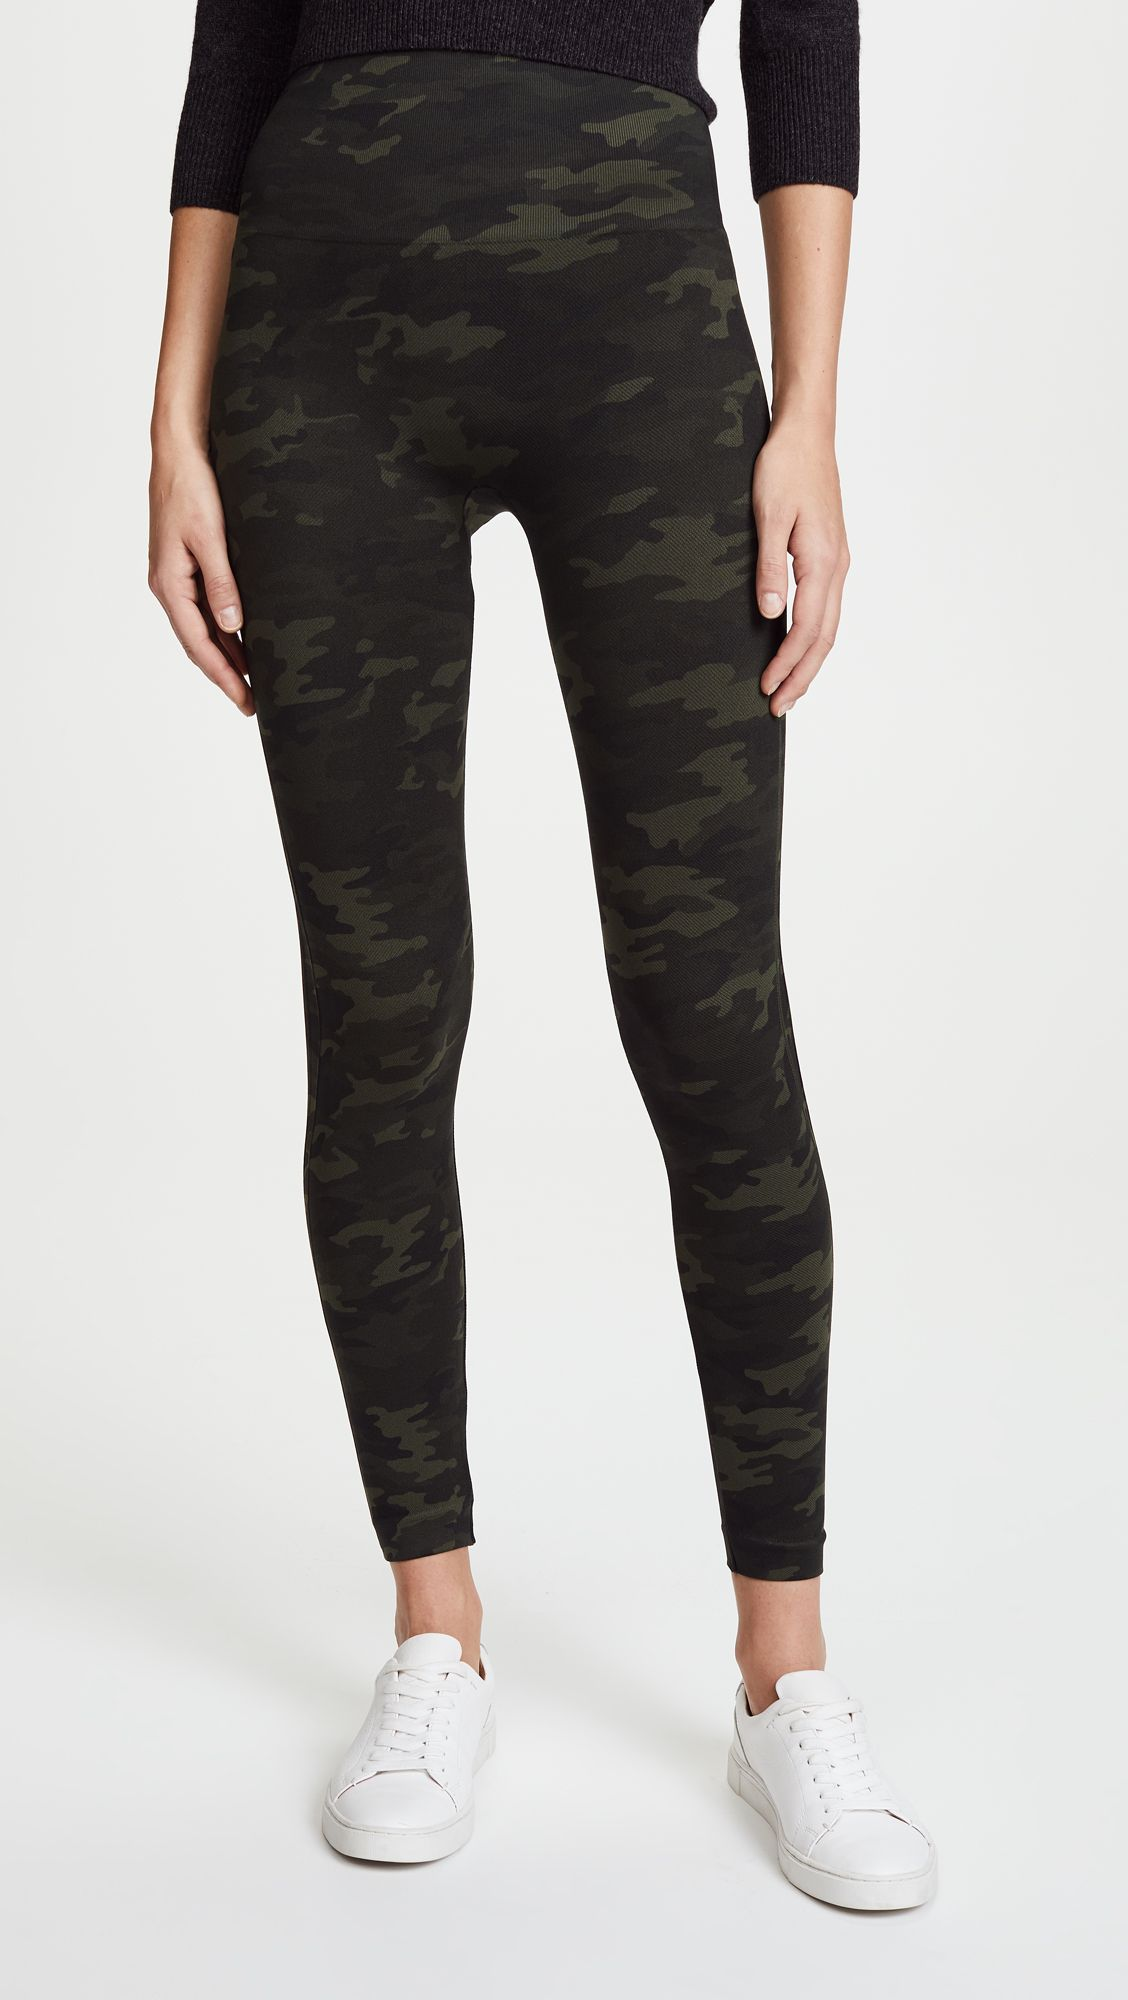 This Is the Most In-Demand Legging Brand Right Now 6